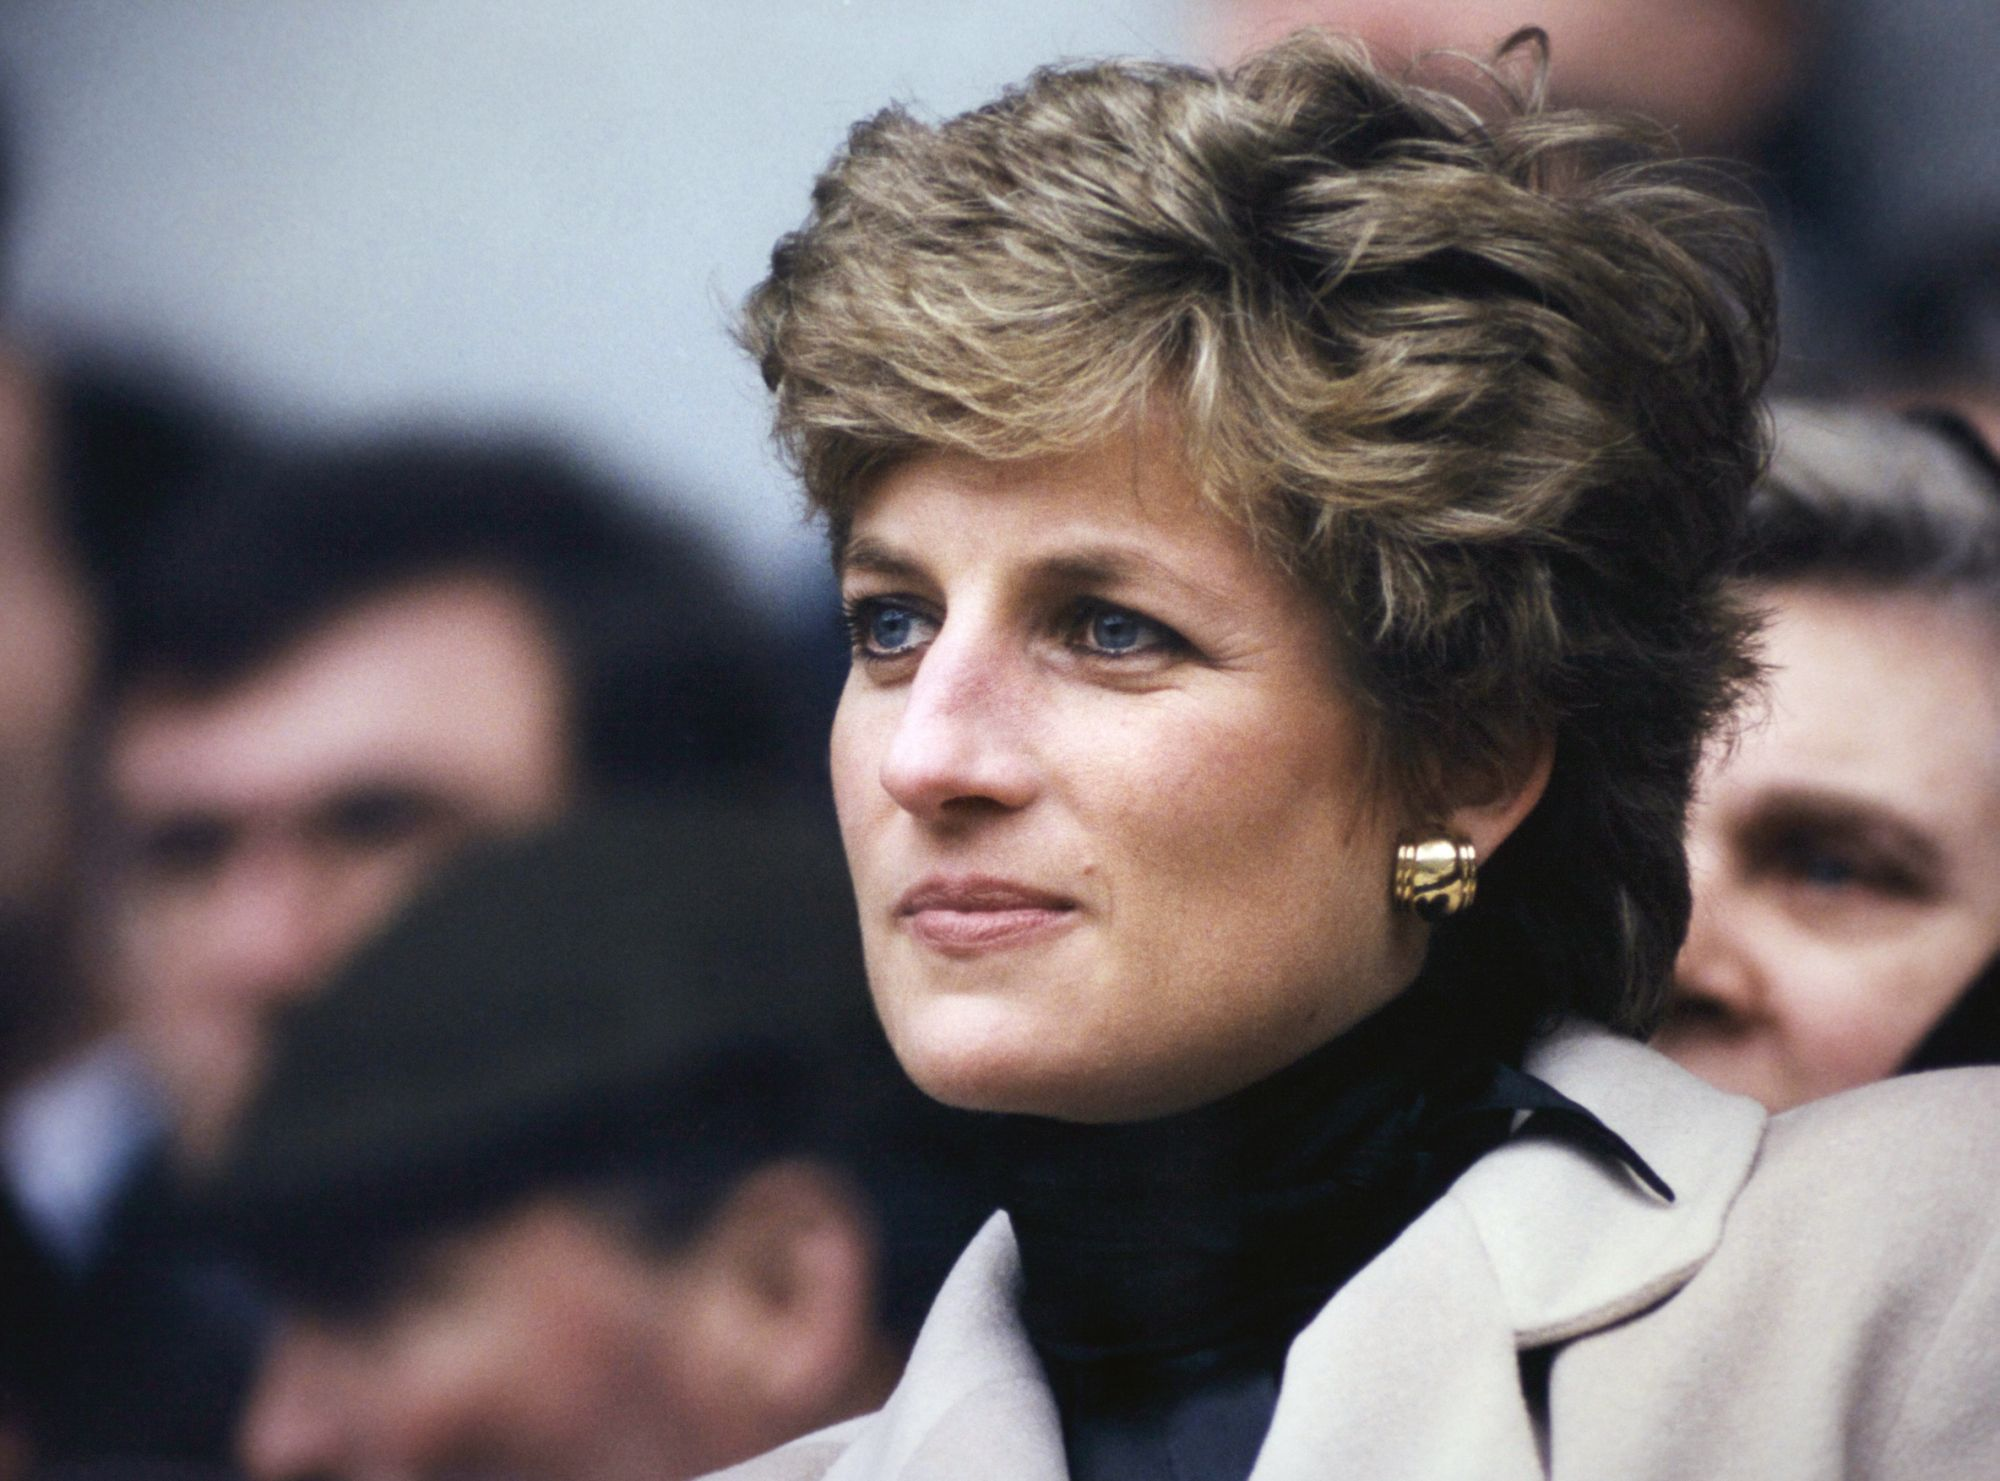 Appeal for 'home footage' of Princess Diana for 'landmark theatrical documentary' of her life